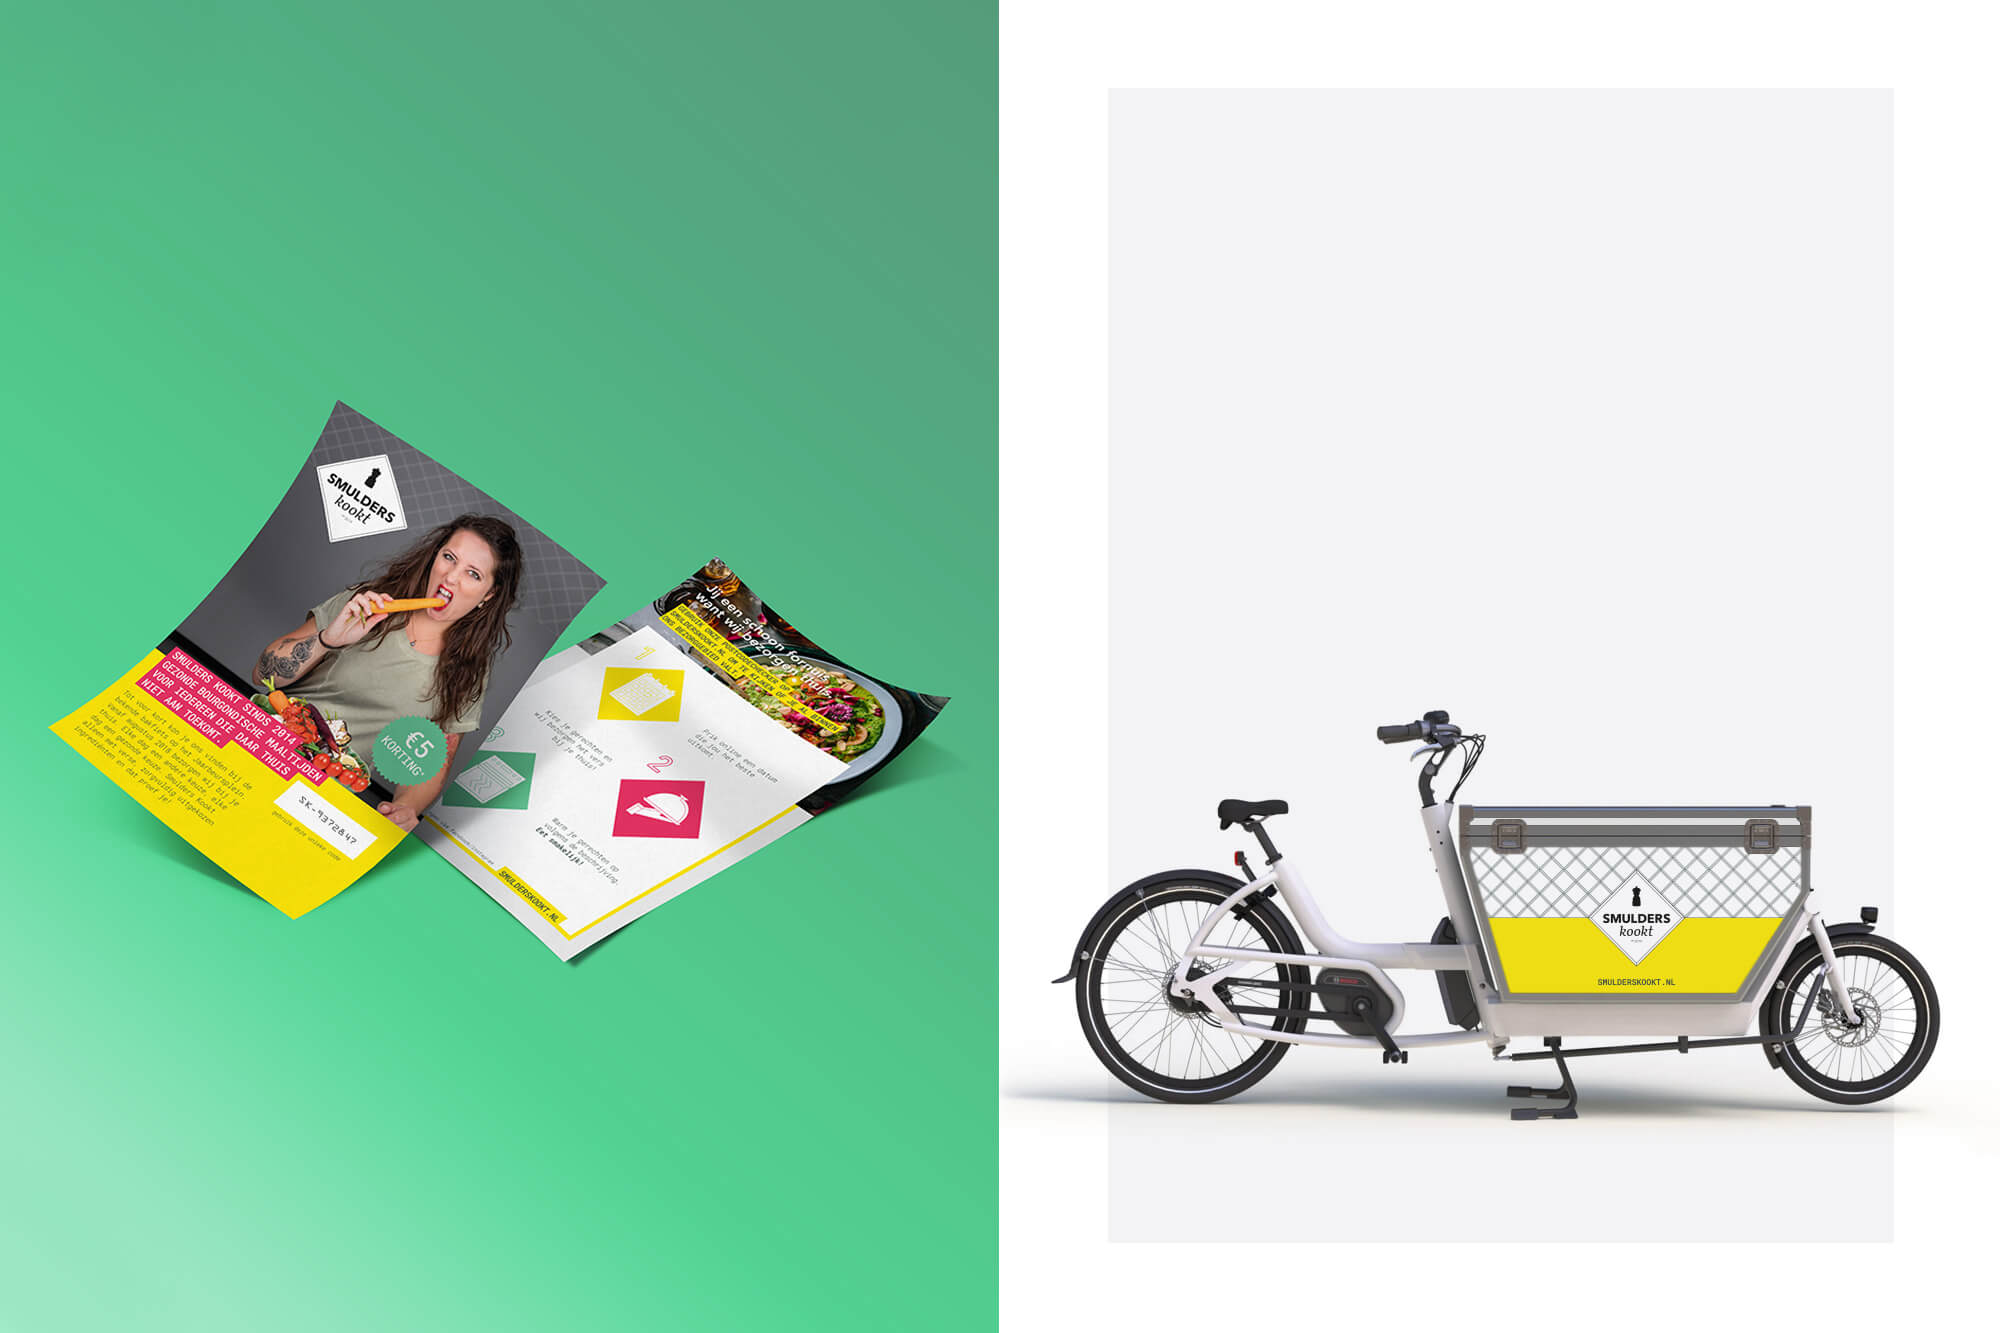 BuroBureaux_smulders-kookt-corporate-identiteit-stationary-city-bike